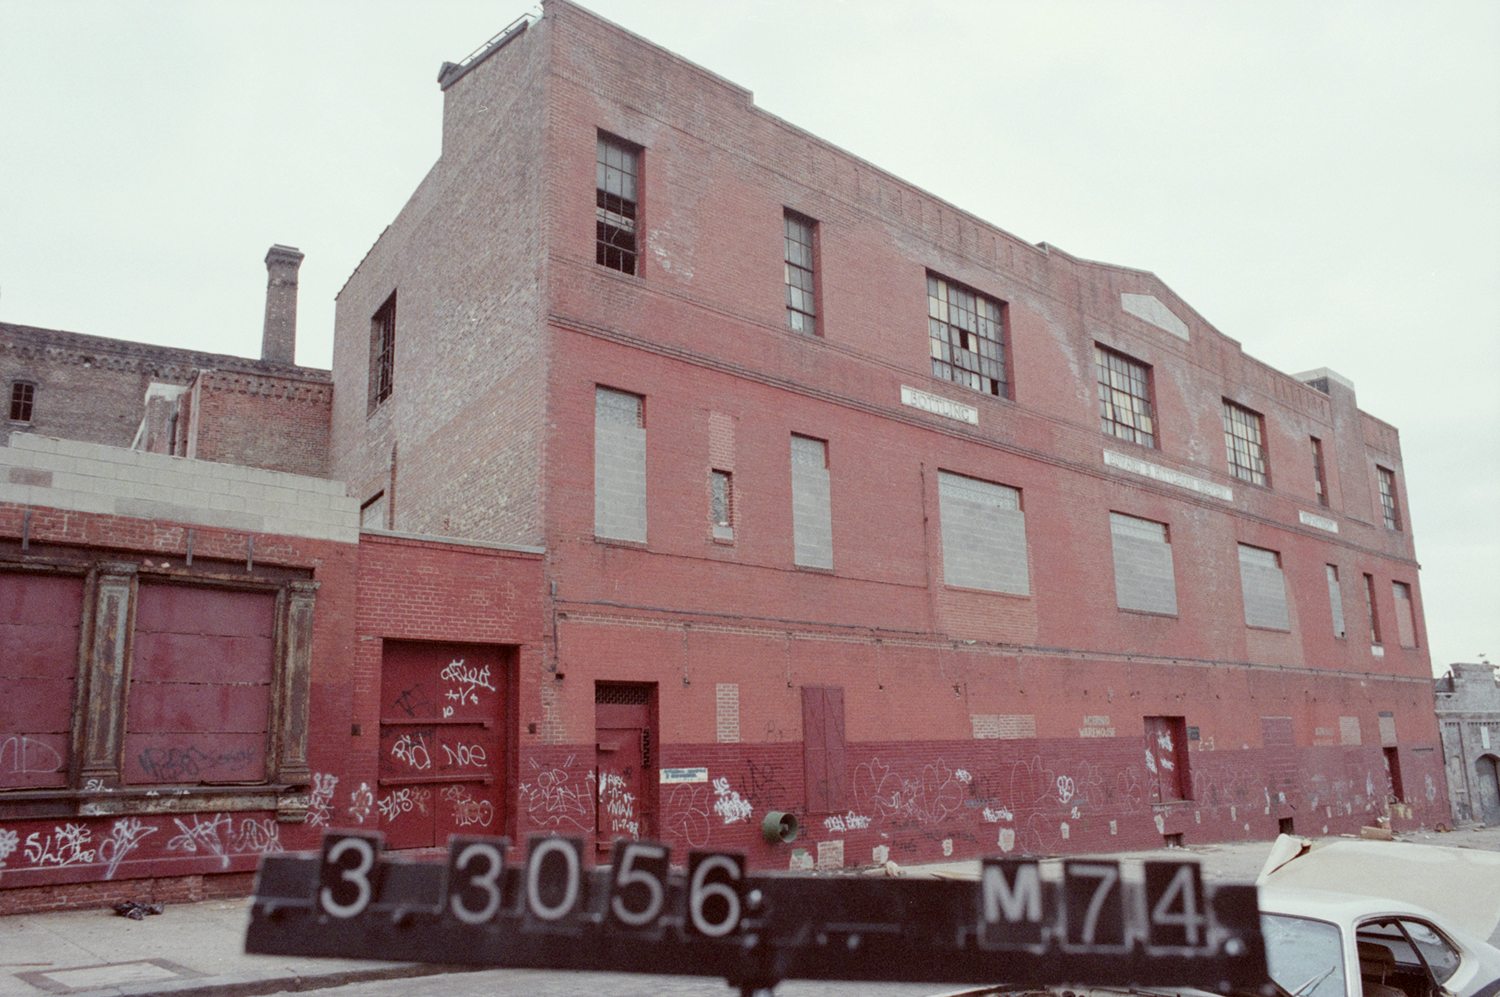 1 Bushwick Place in the 1980s, seen here in unkempt fashion. This former brewery would go on to become different music venues, including the Wick, and practice spaces. Department of Finance Collection, NYC Municipal Archives.